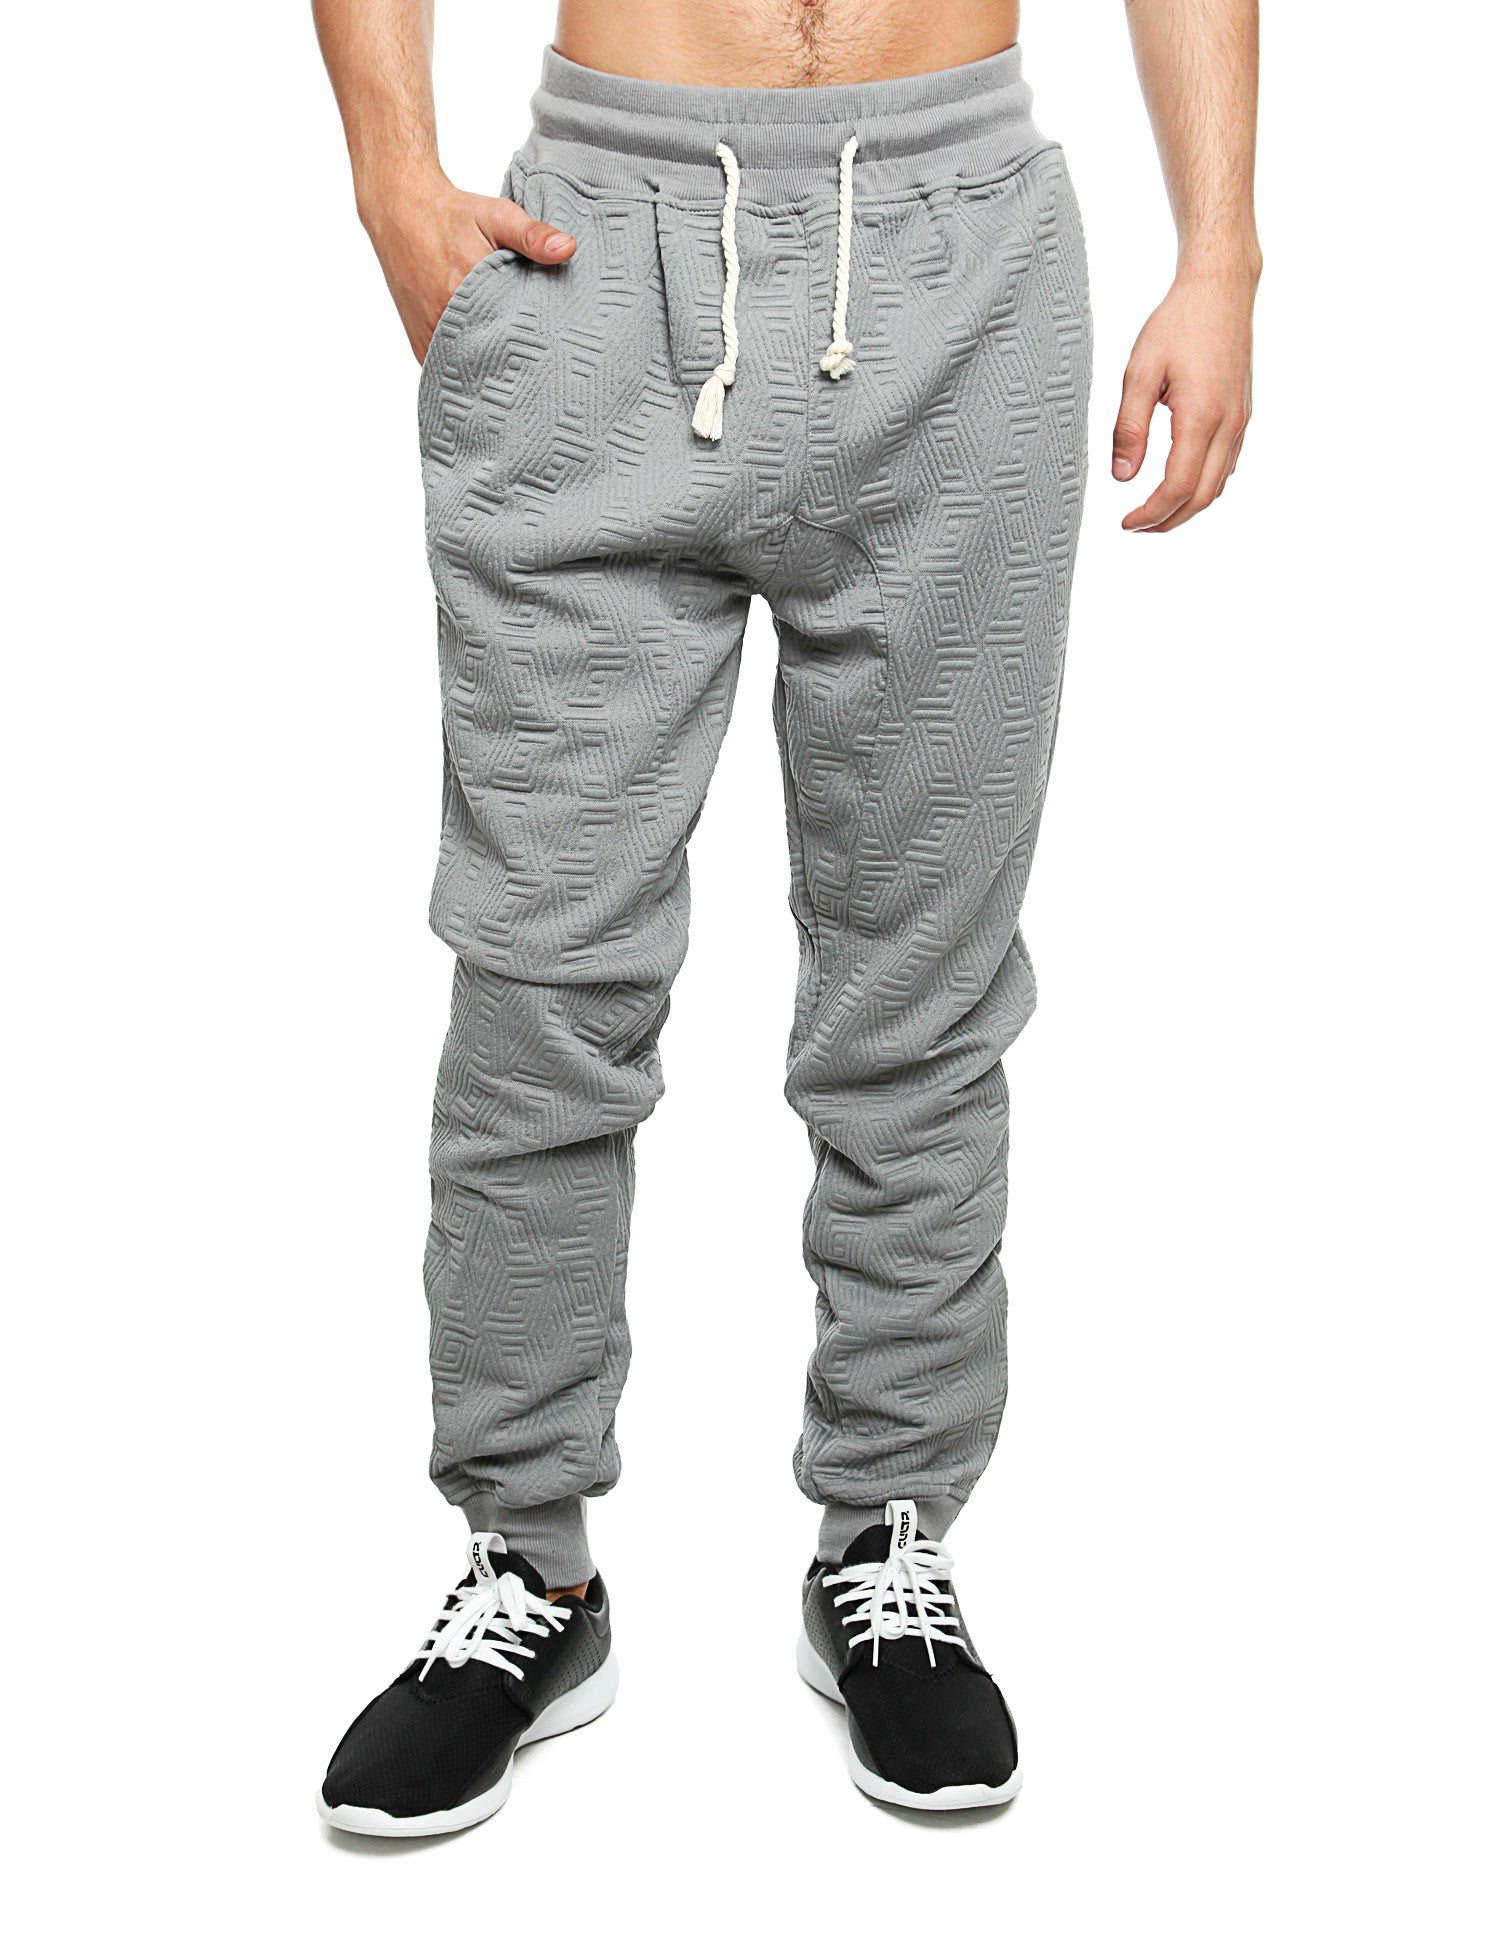 Imperious ´Quilted´ Sweatpant FP542 Grey